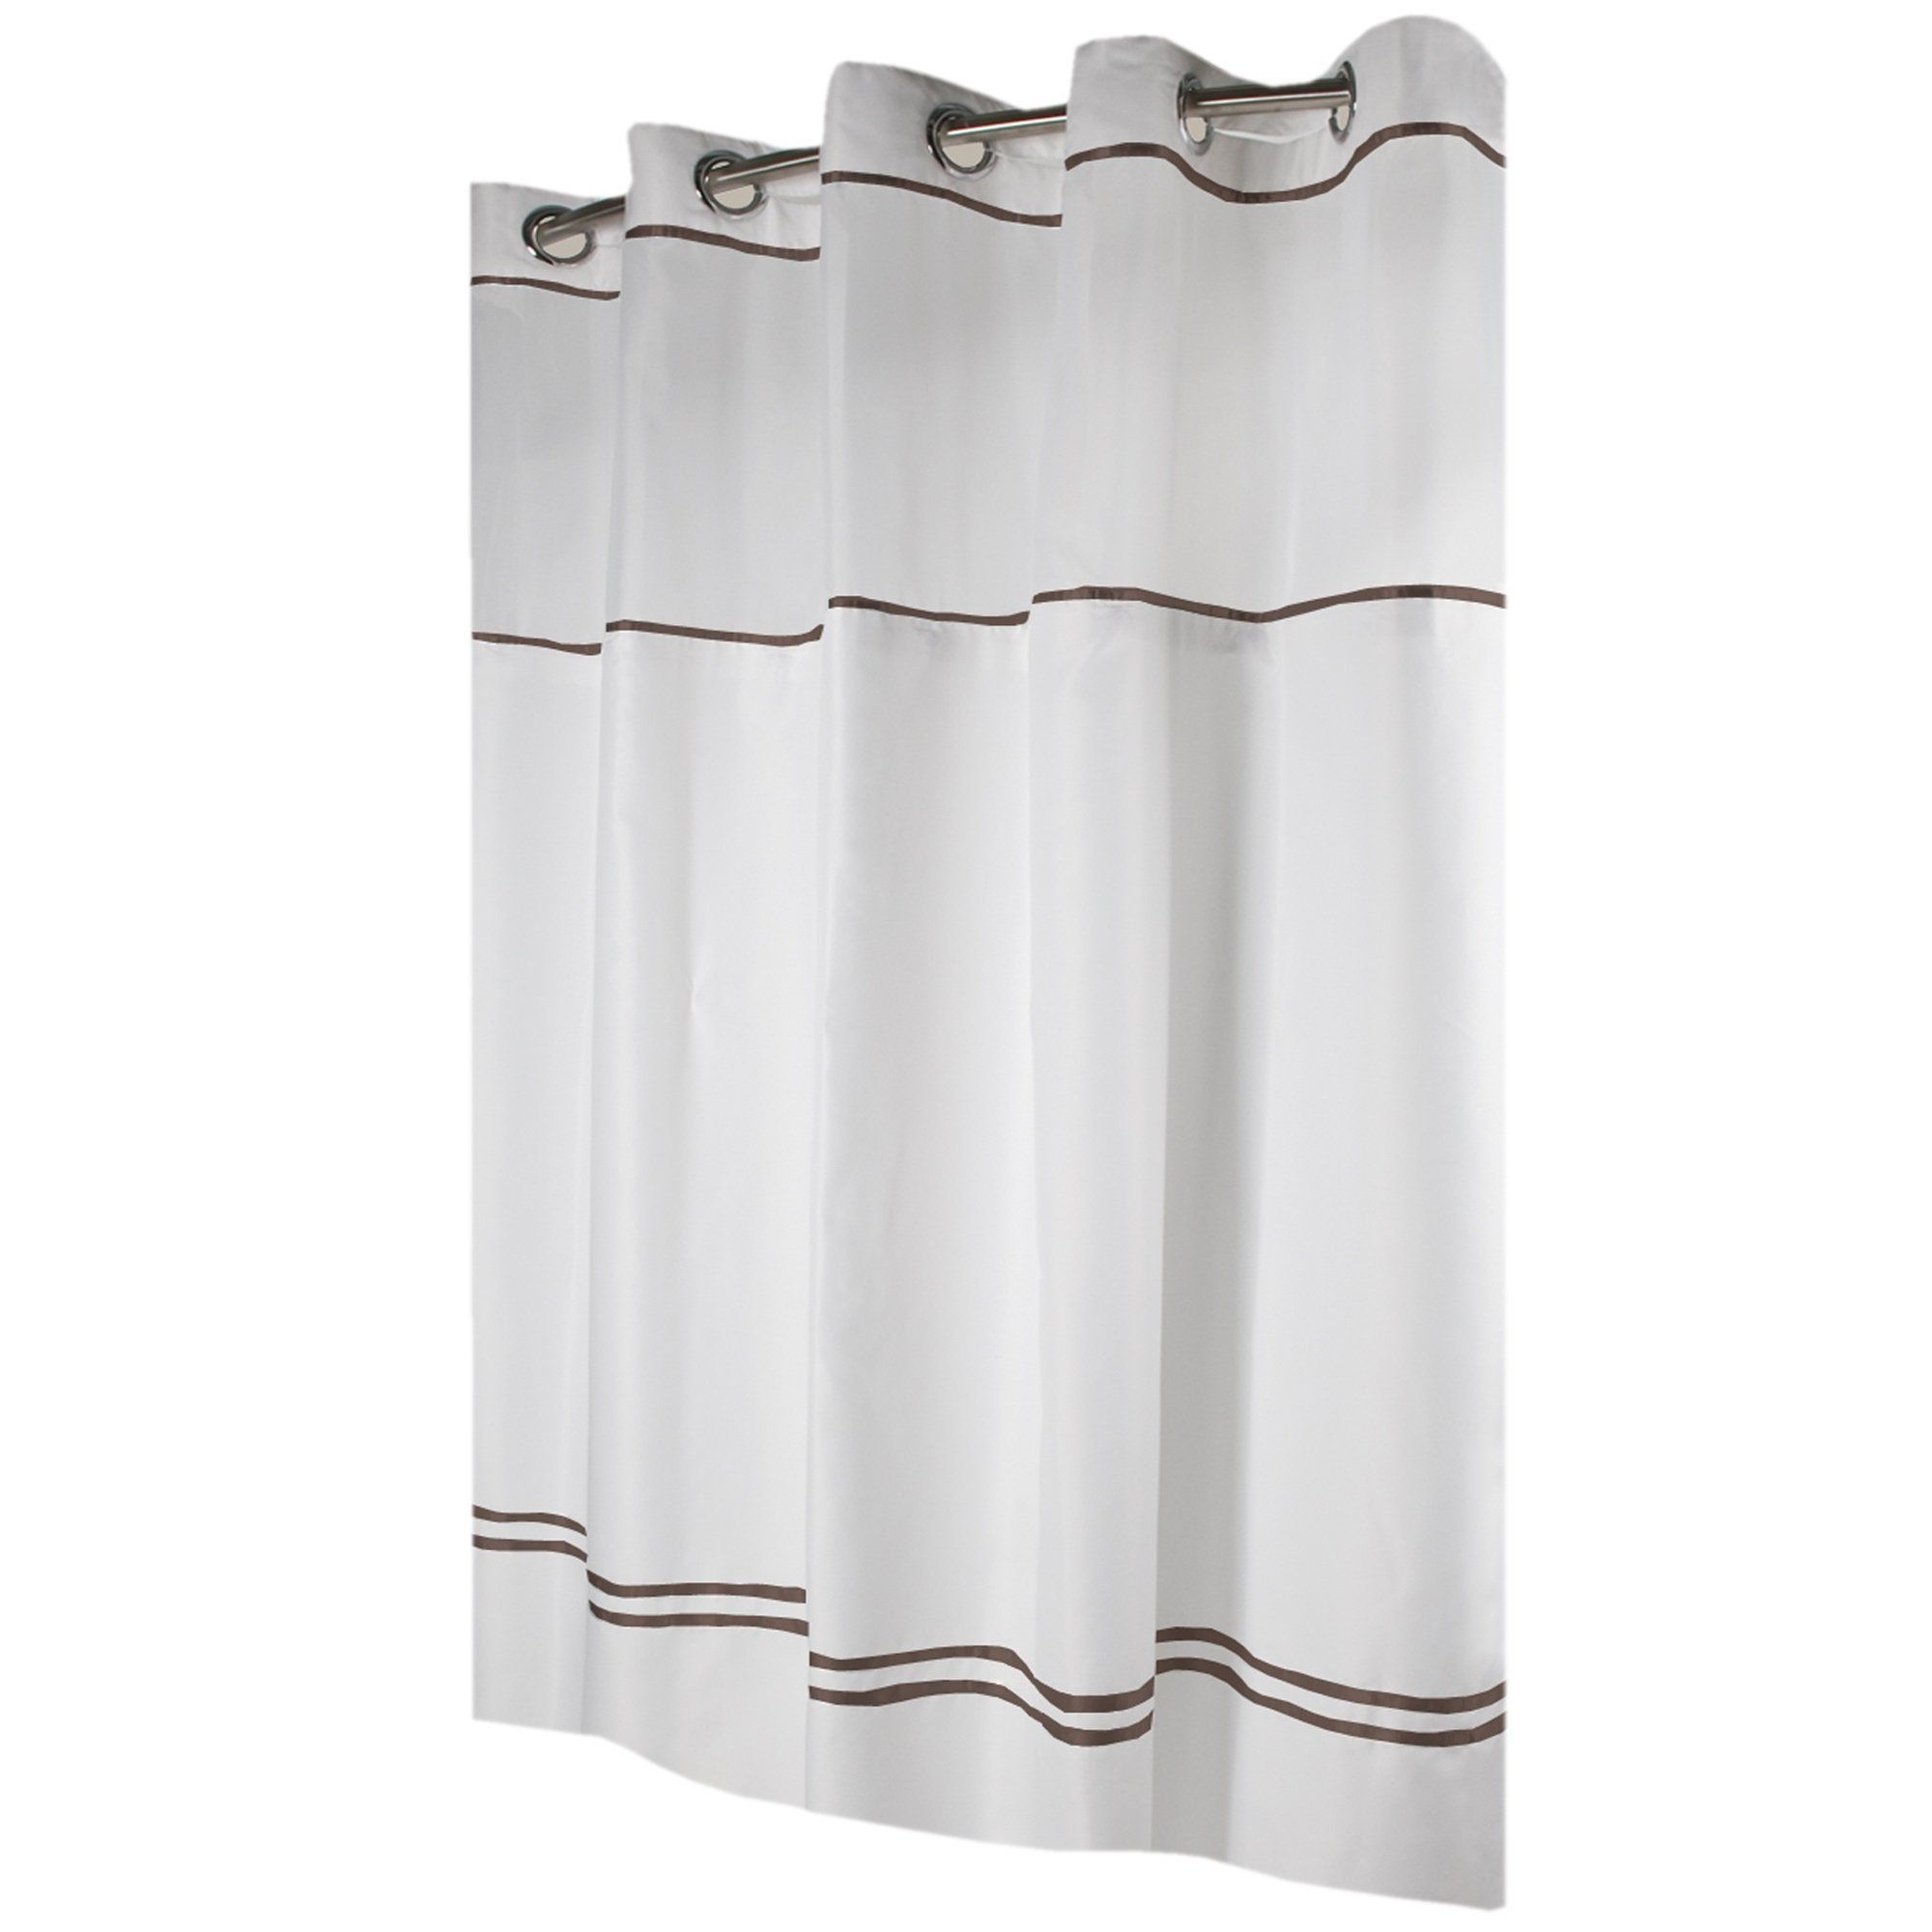 Hookless Shower Curtain Monterey White Brown Brown Black Curtains Curtains Hookless Shower Curtain